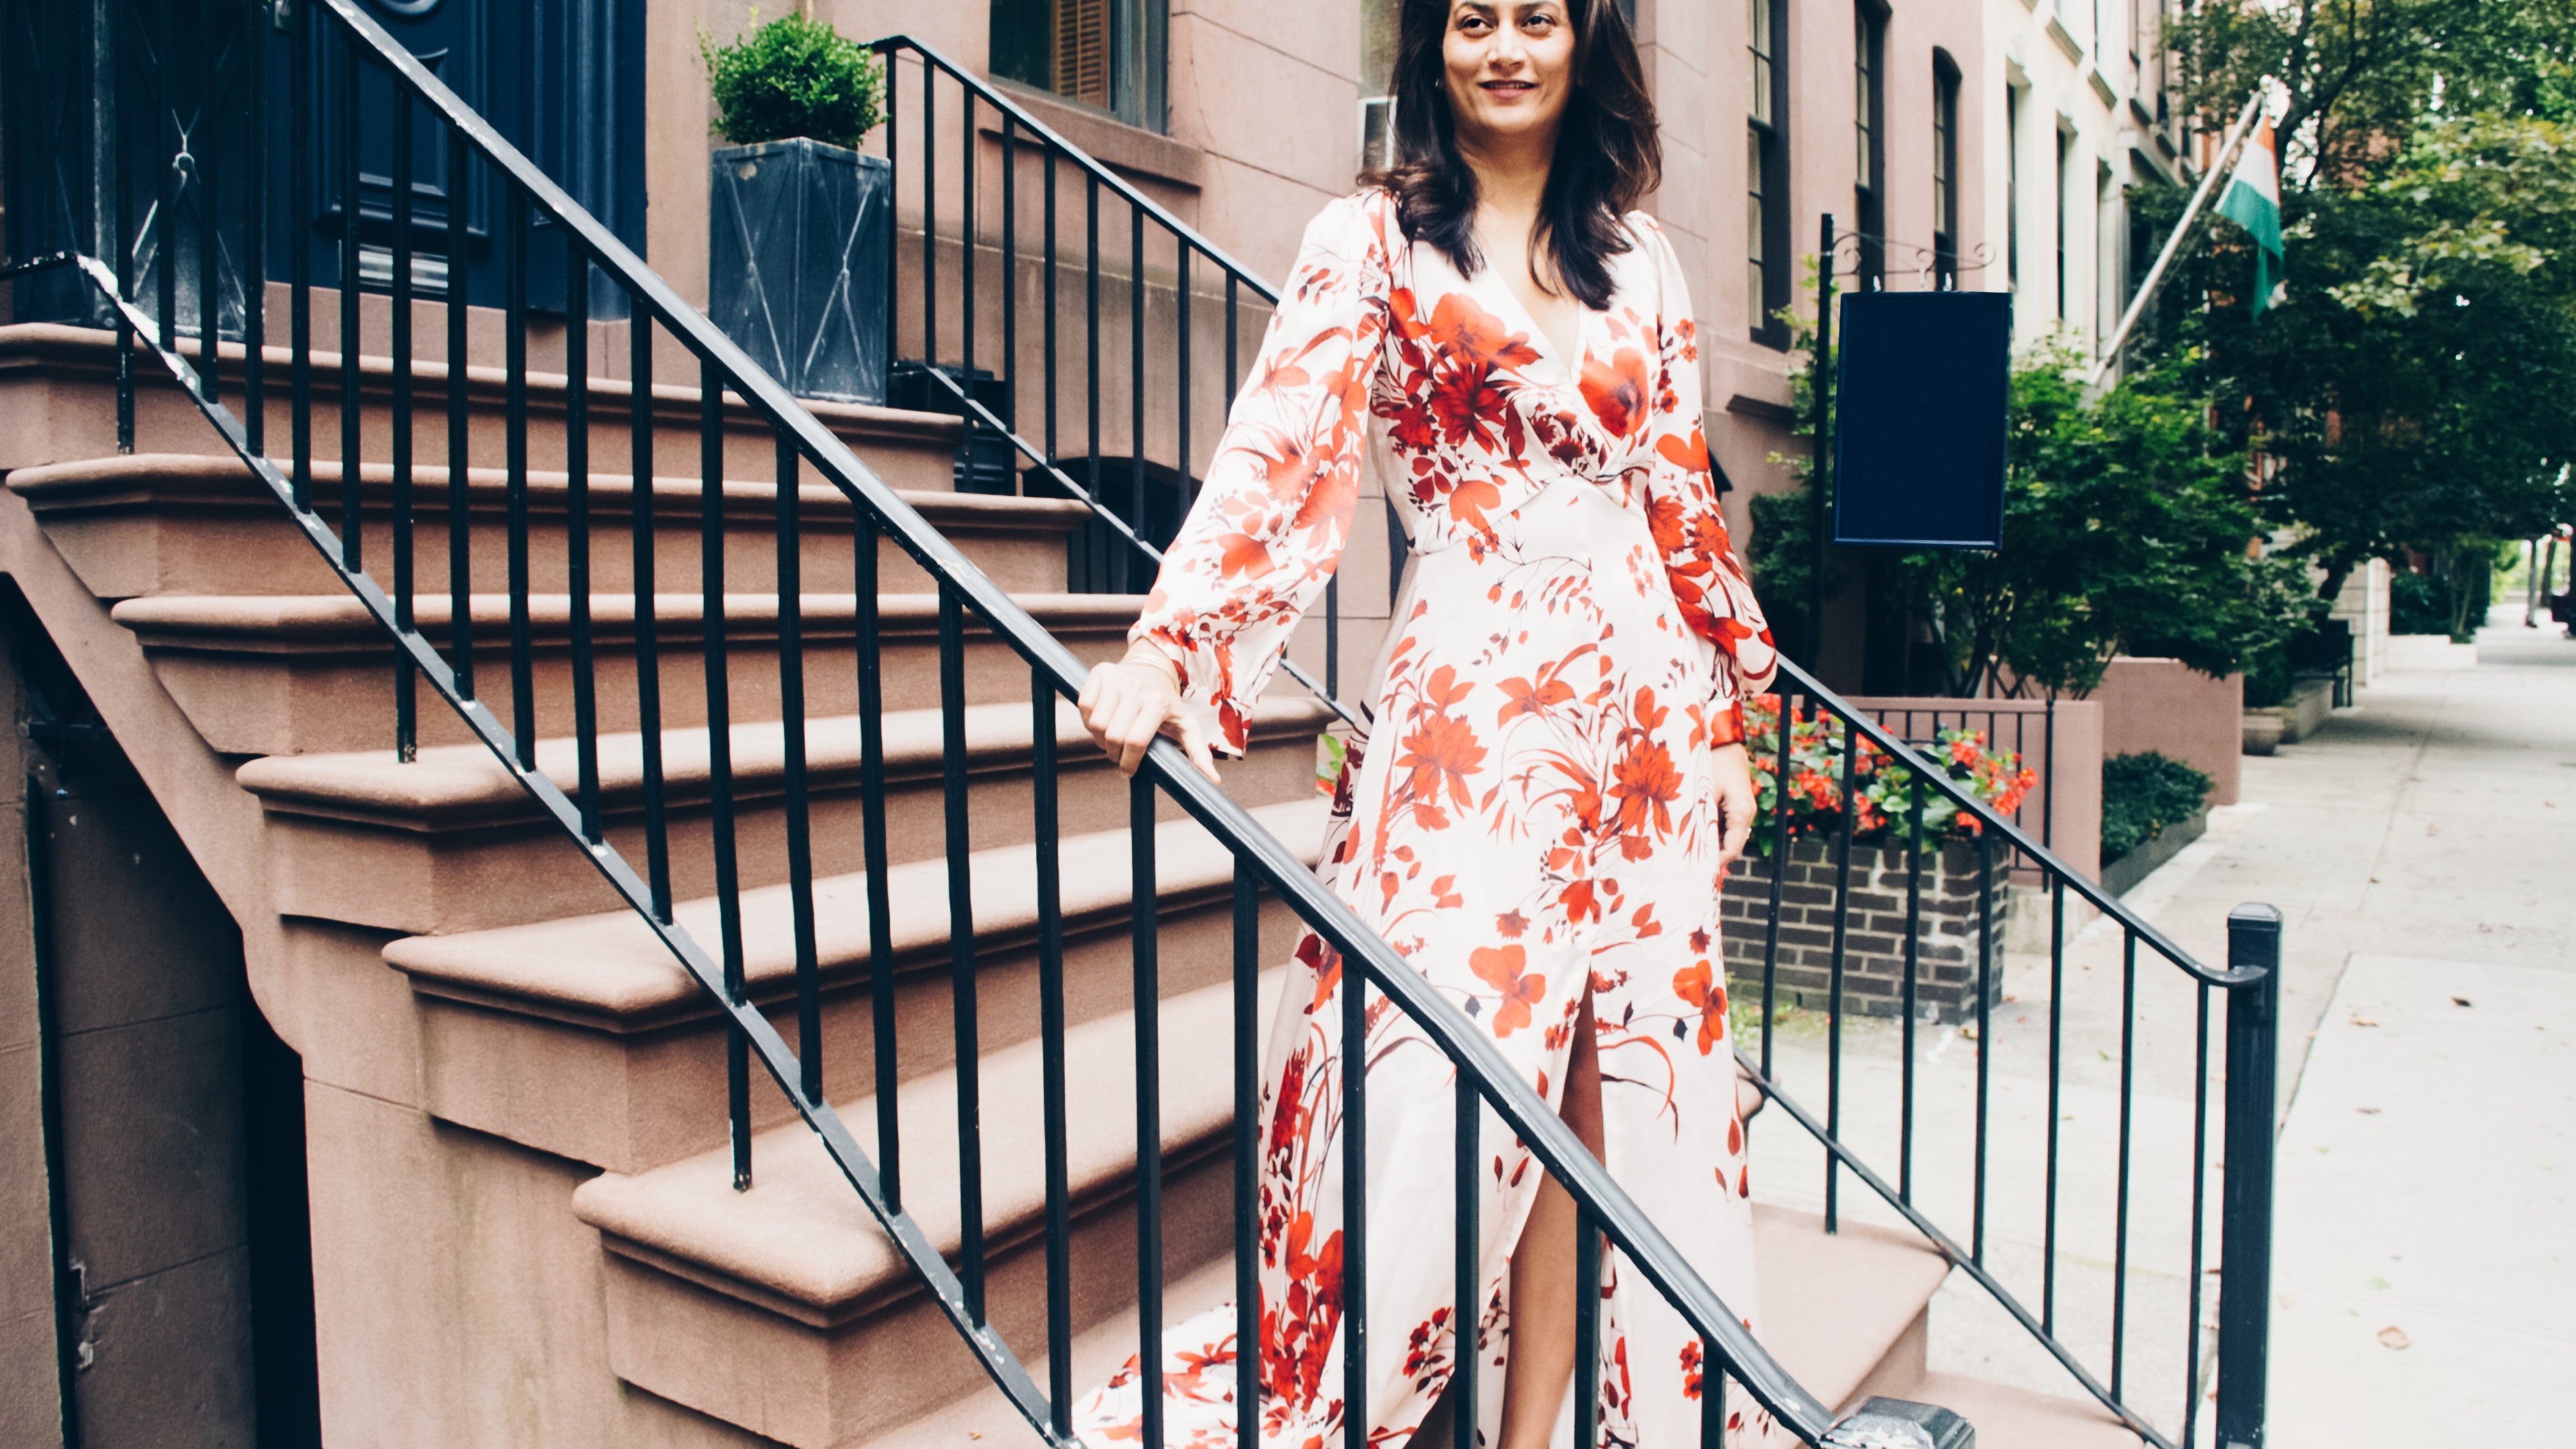 Lady standing on stairs